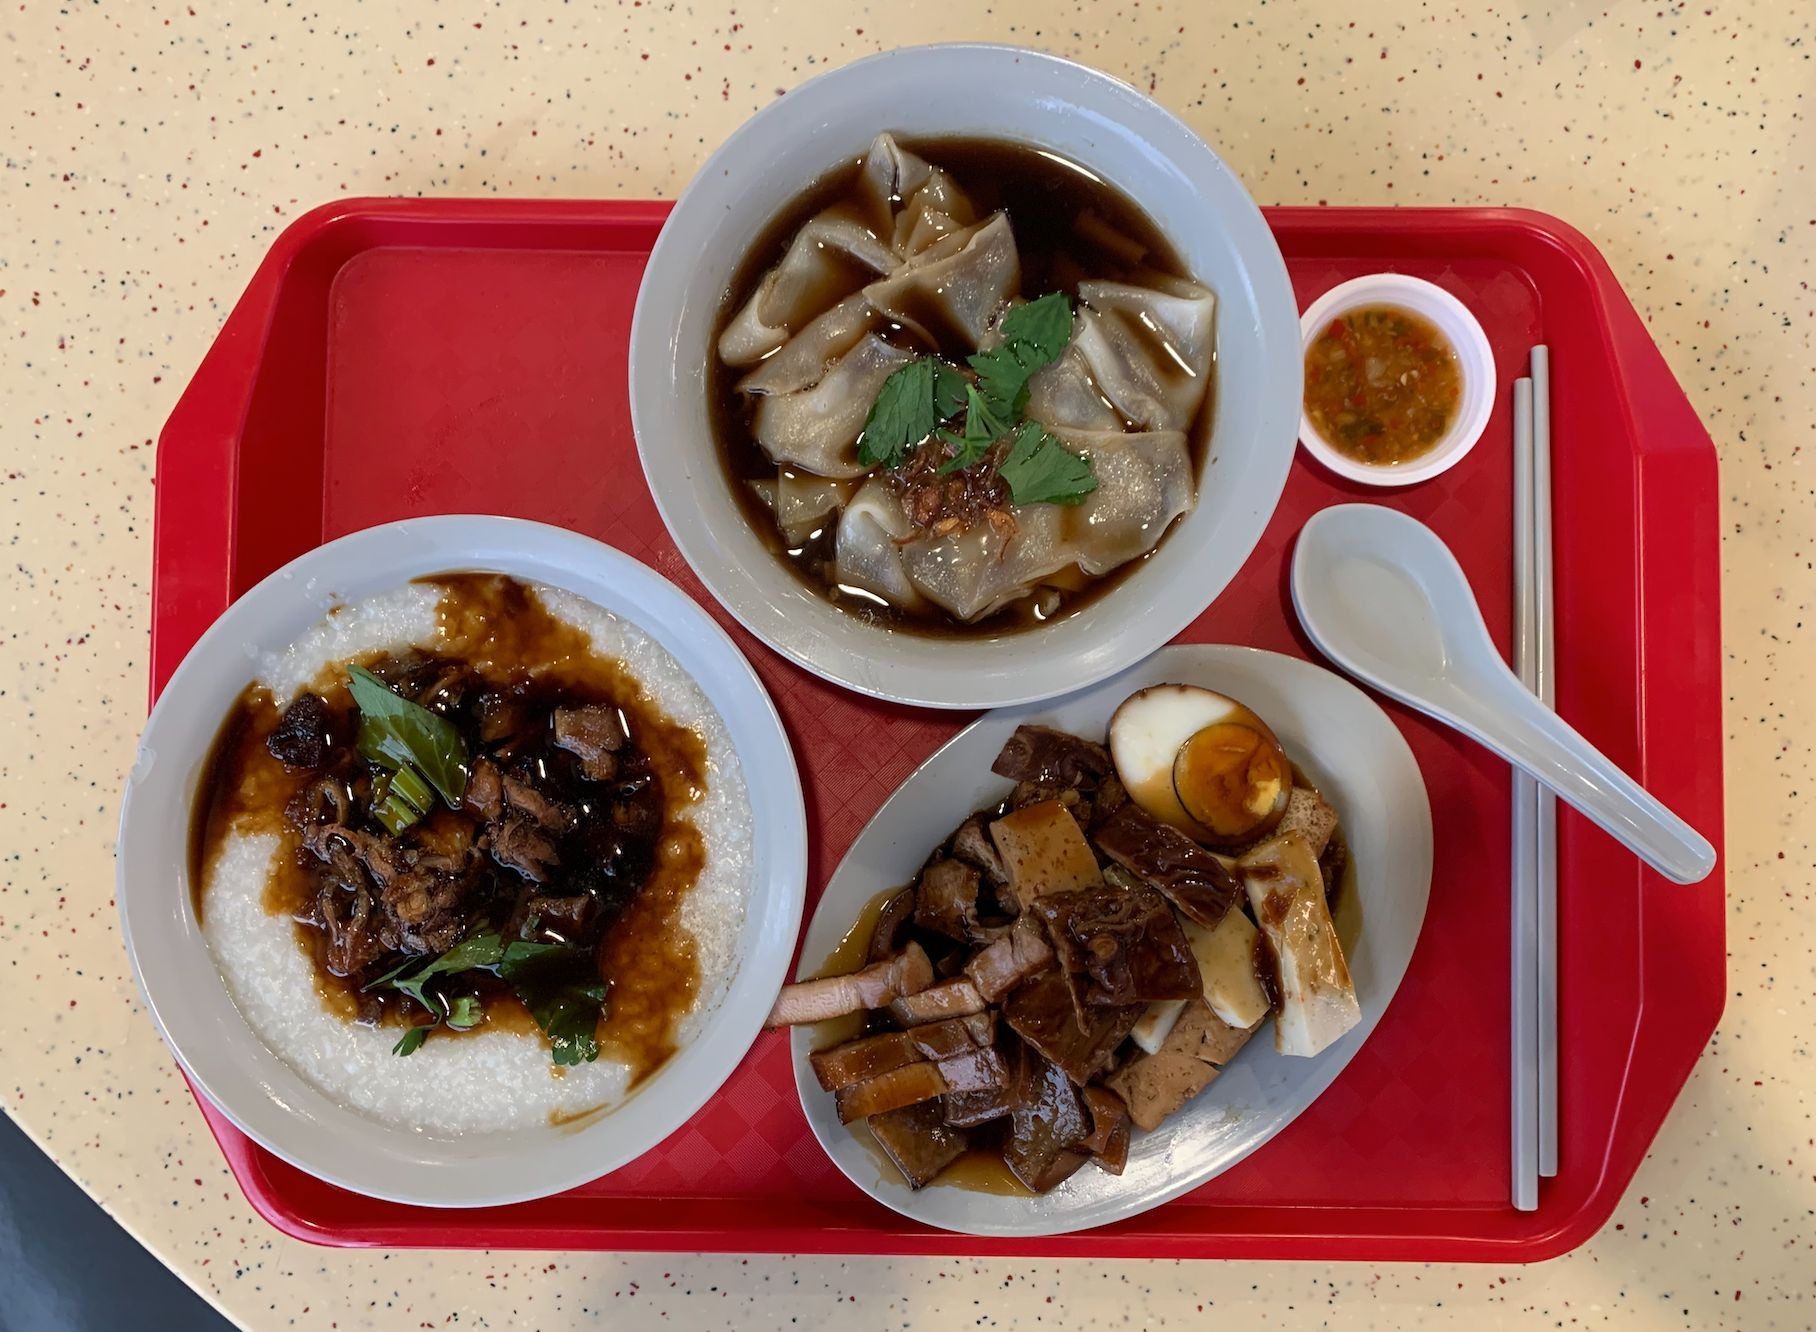 tiong bahru braised duck